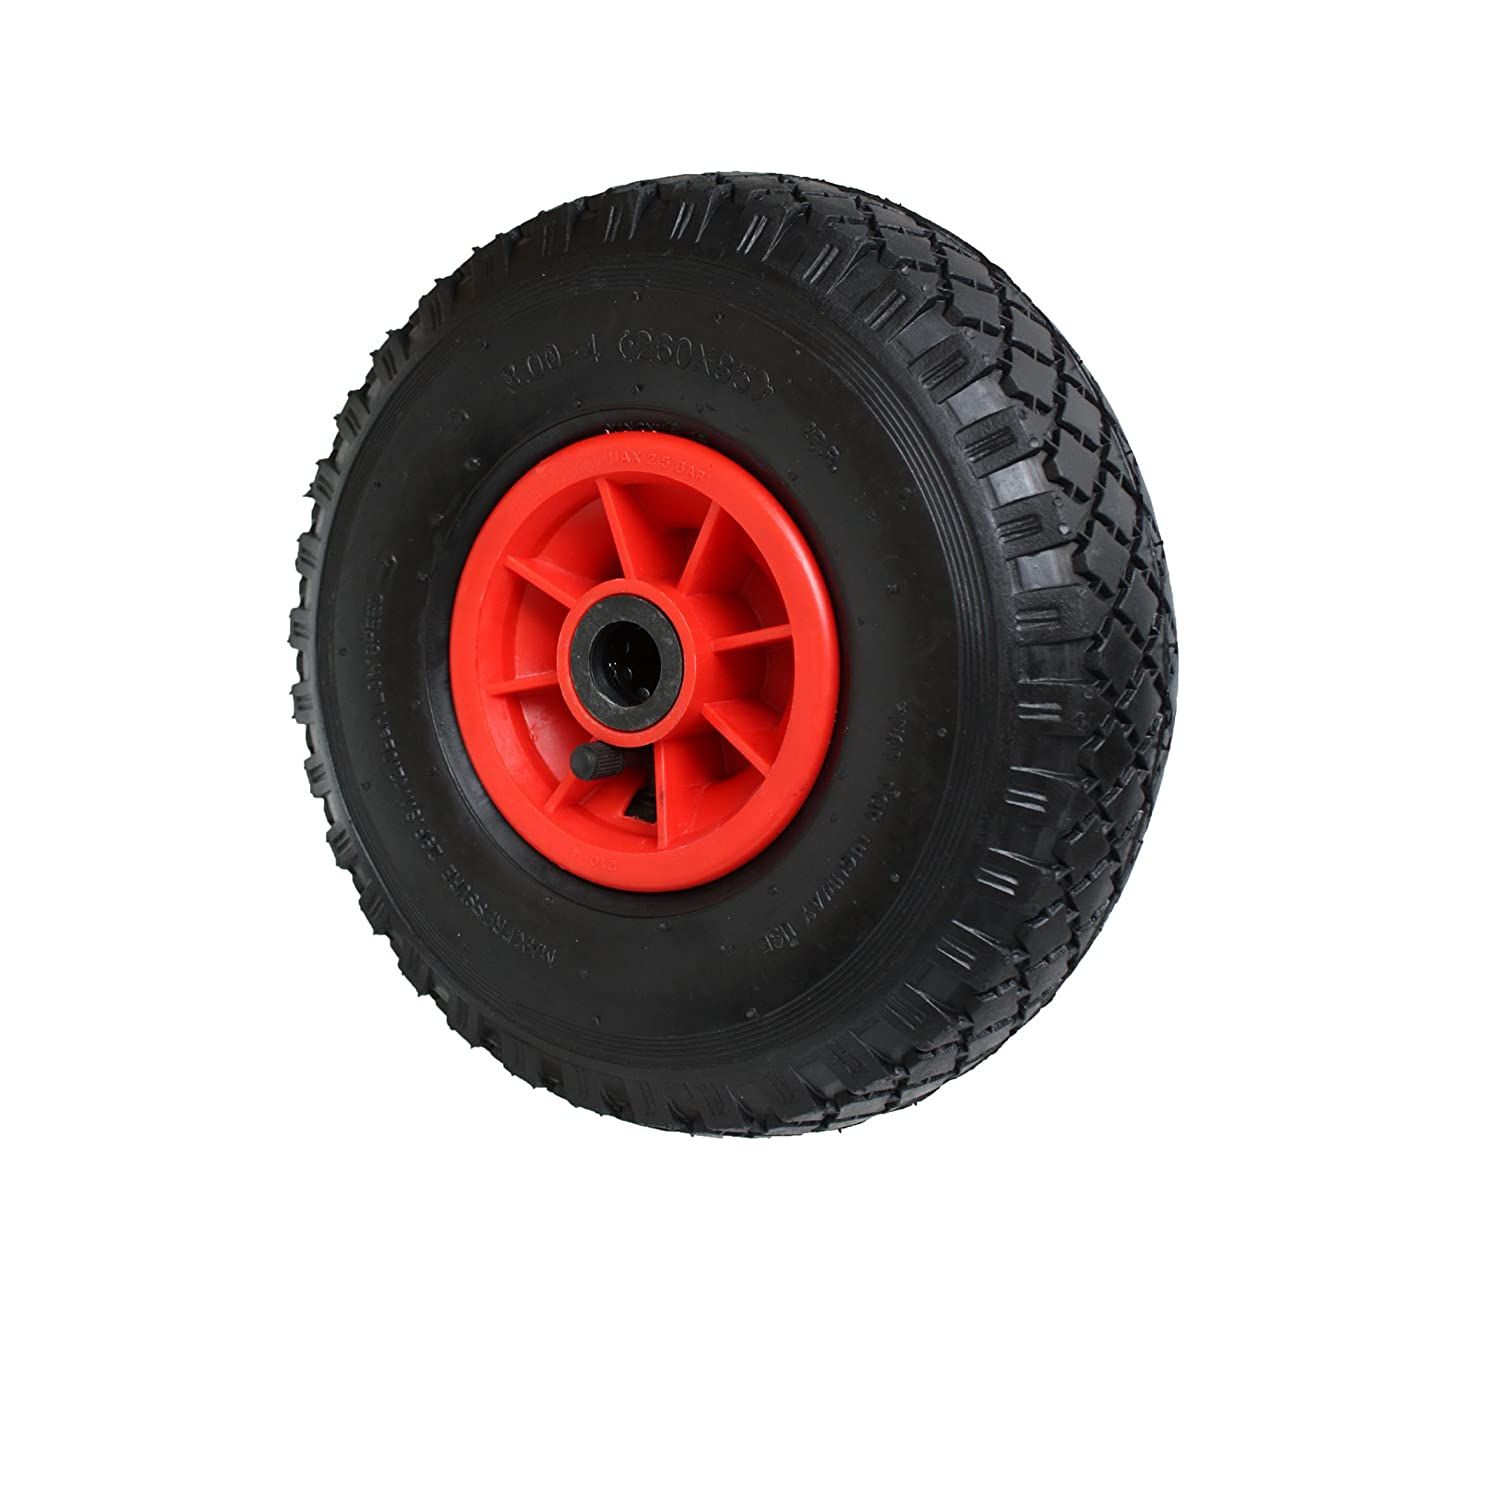 Pneumatic Wheel 260 x 85 x 20 mm - 3. 00-4 PR2 - For Wheelbarrows, Handcarts, Sack Trucks Etc. Max Load: 136 kg stricker-handwerksbedarf T42